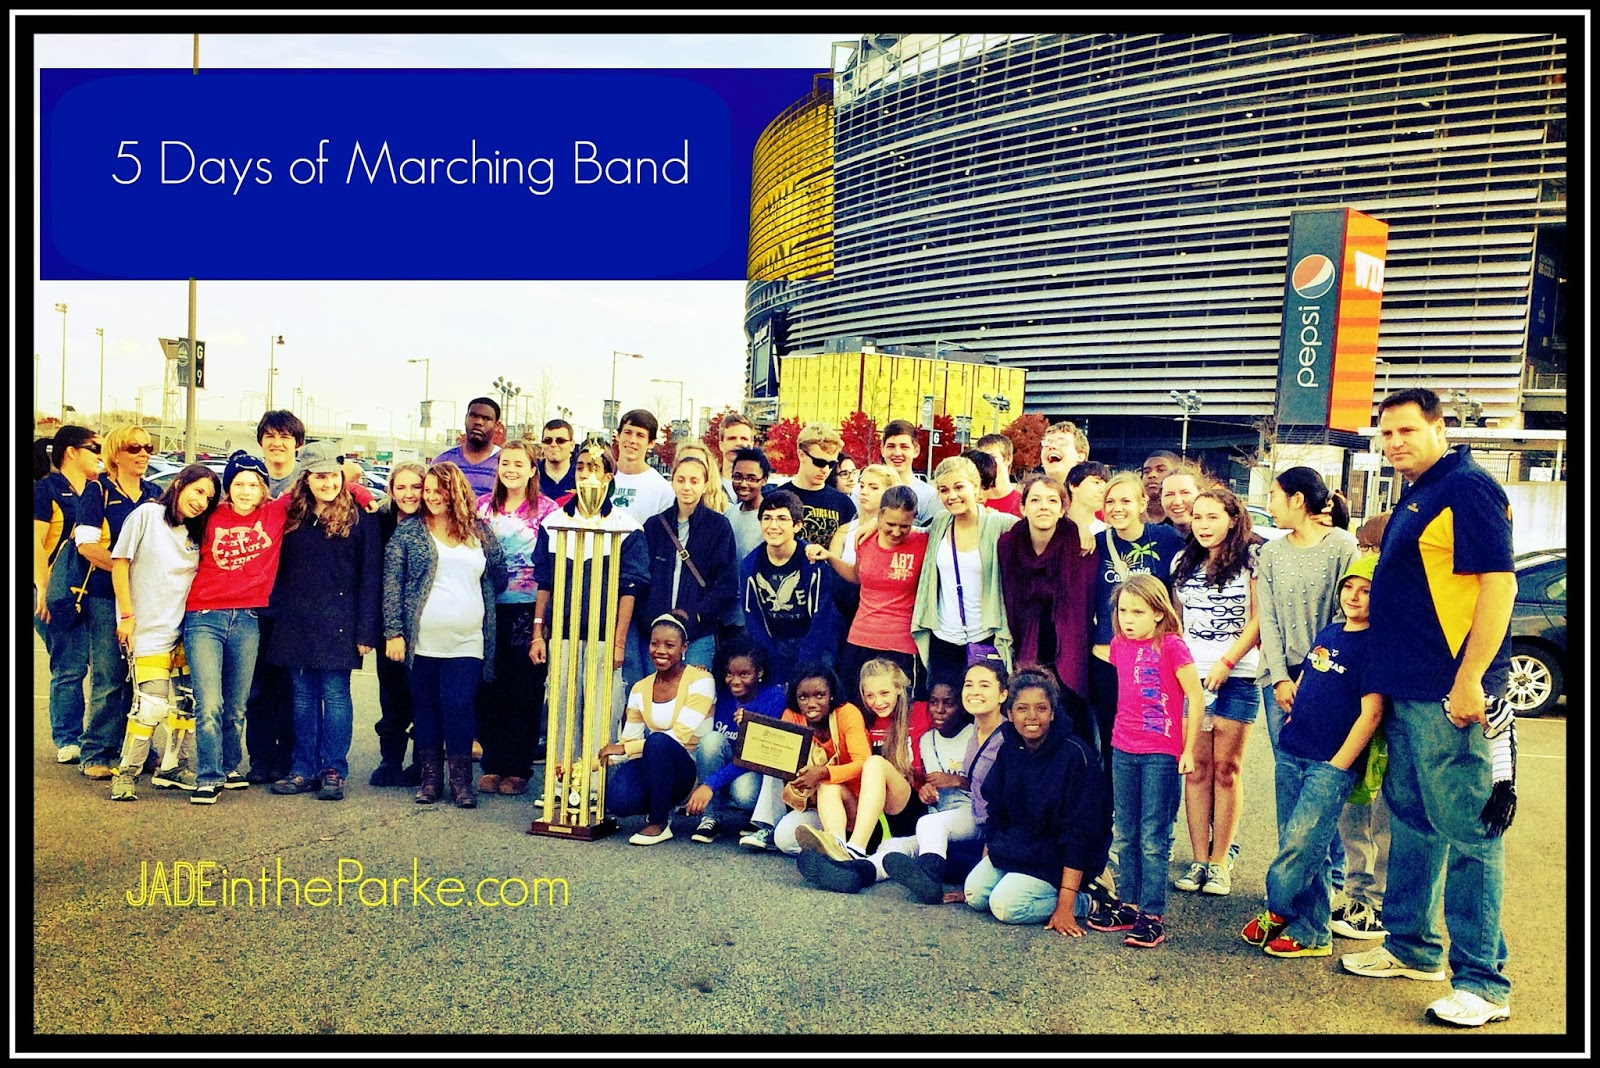 http://www.jadeintheparke.com/2013/11/5-days-of-marching-band.html